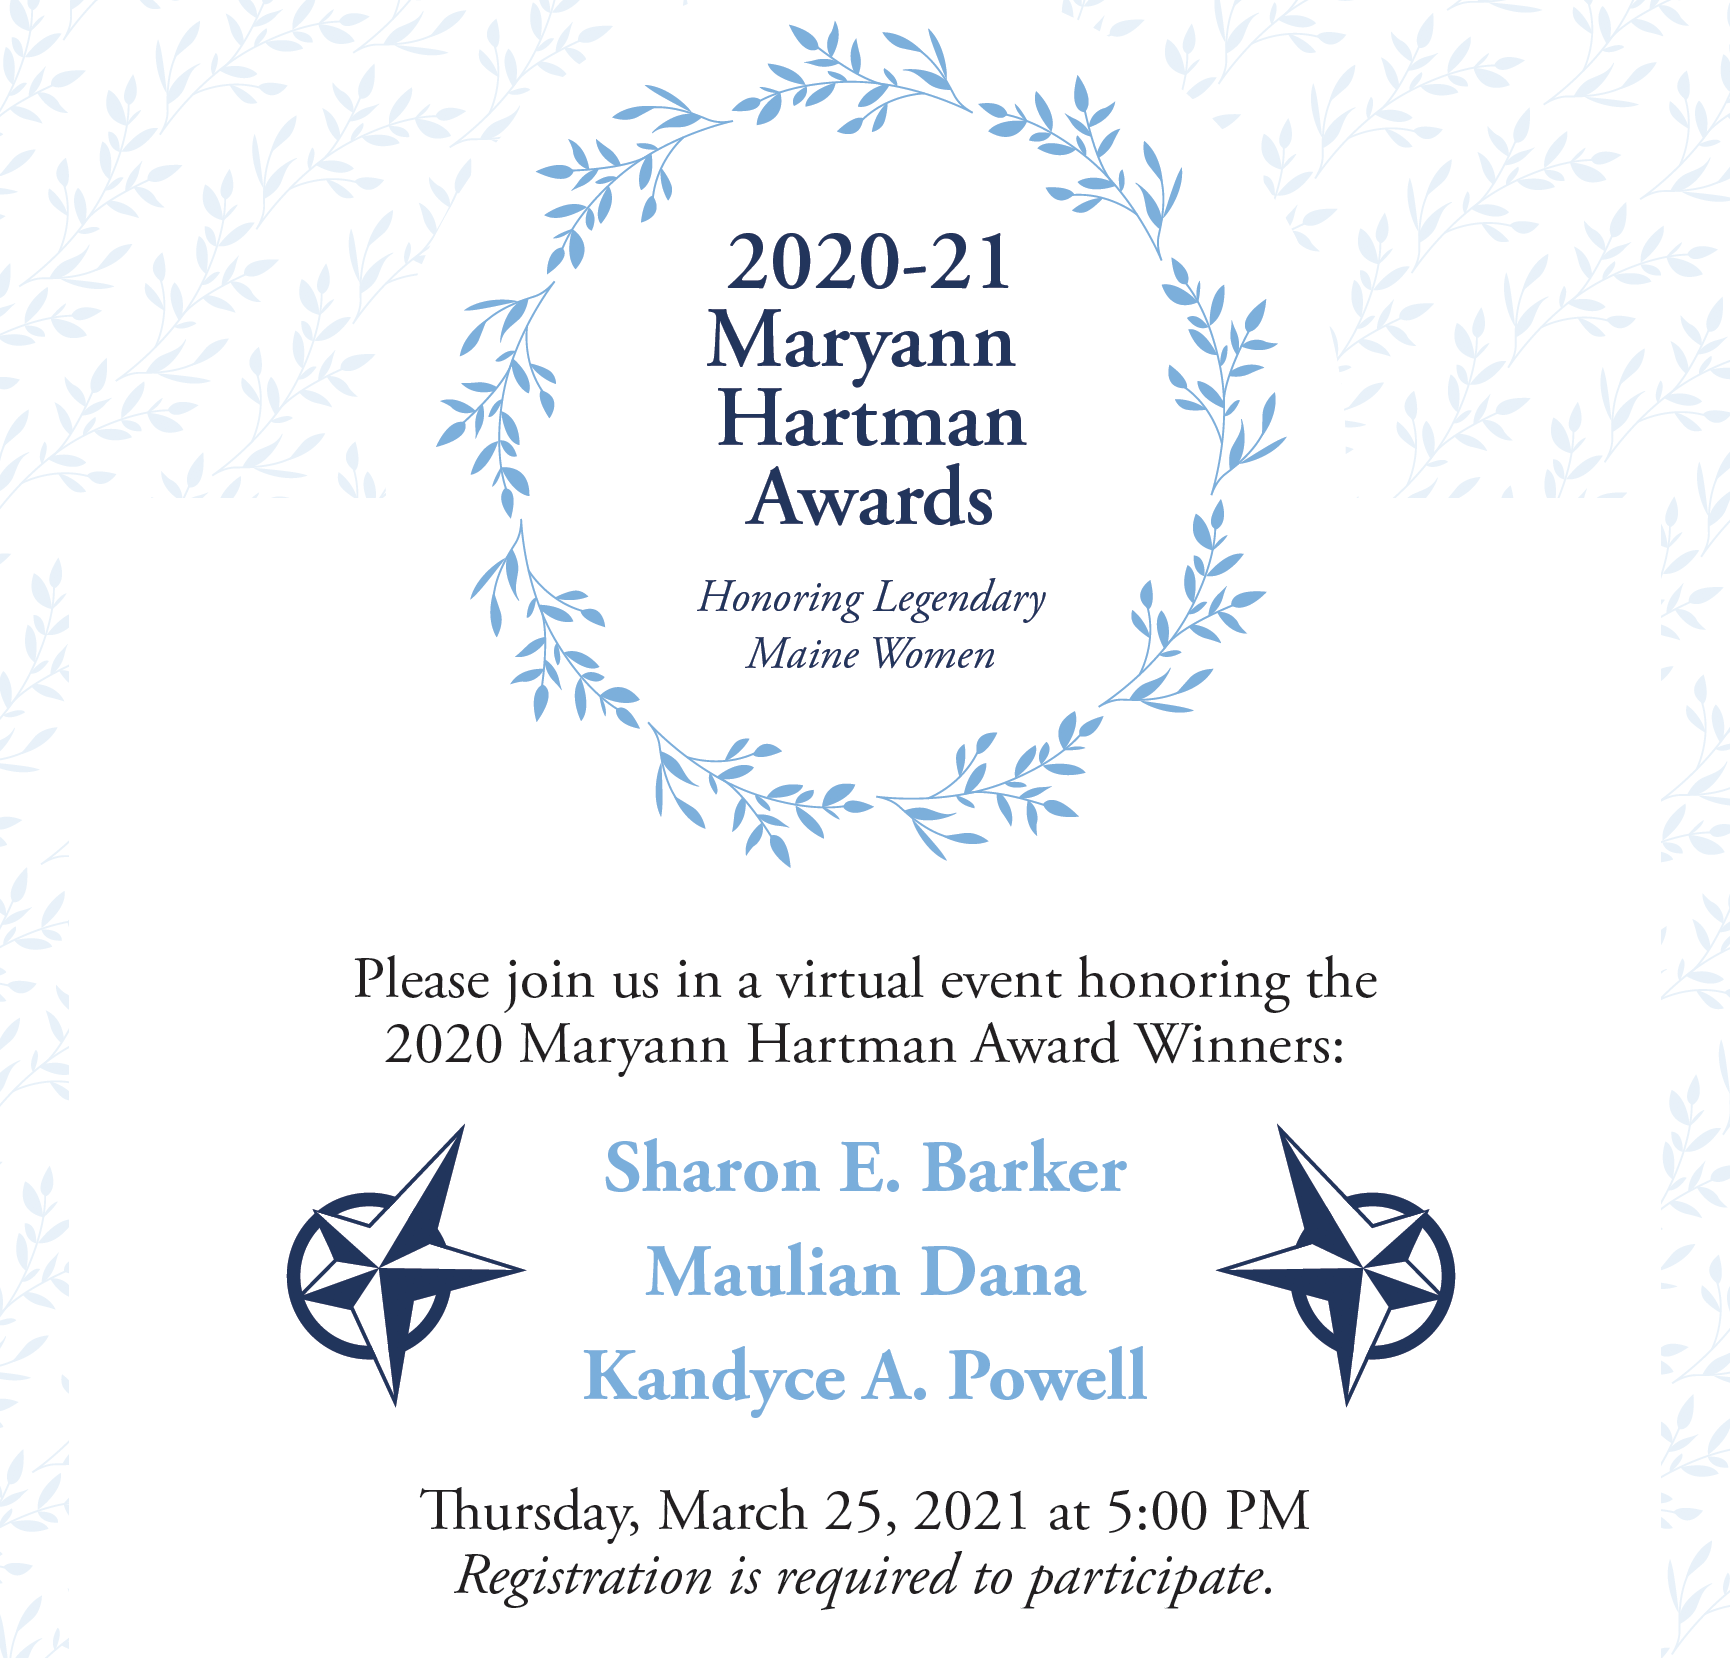 2020-21 Maryann Hartman Awards; Honoring Legendary Maine Women. 2020 Maryann Hartman Award Winners: Sharon E. Barker, Maulian Dana, Kandyce A. Powell